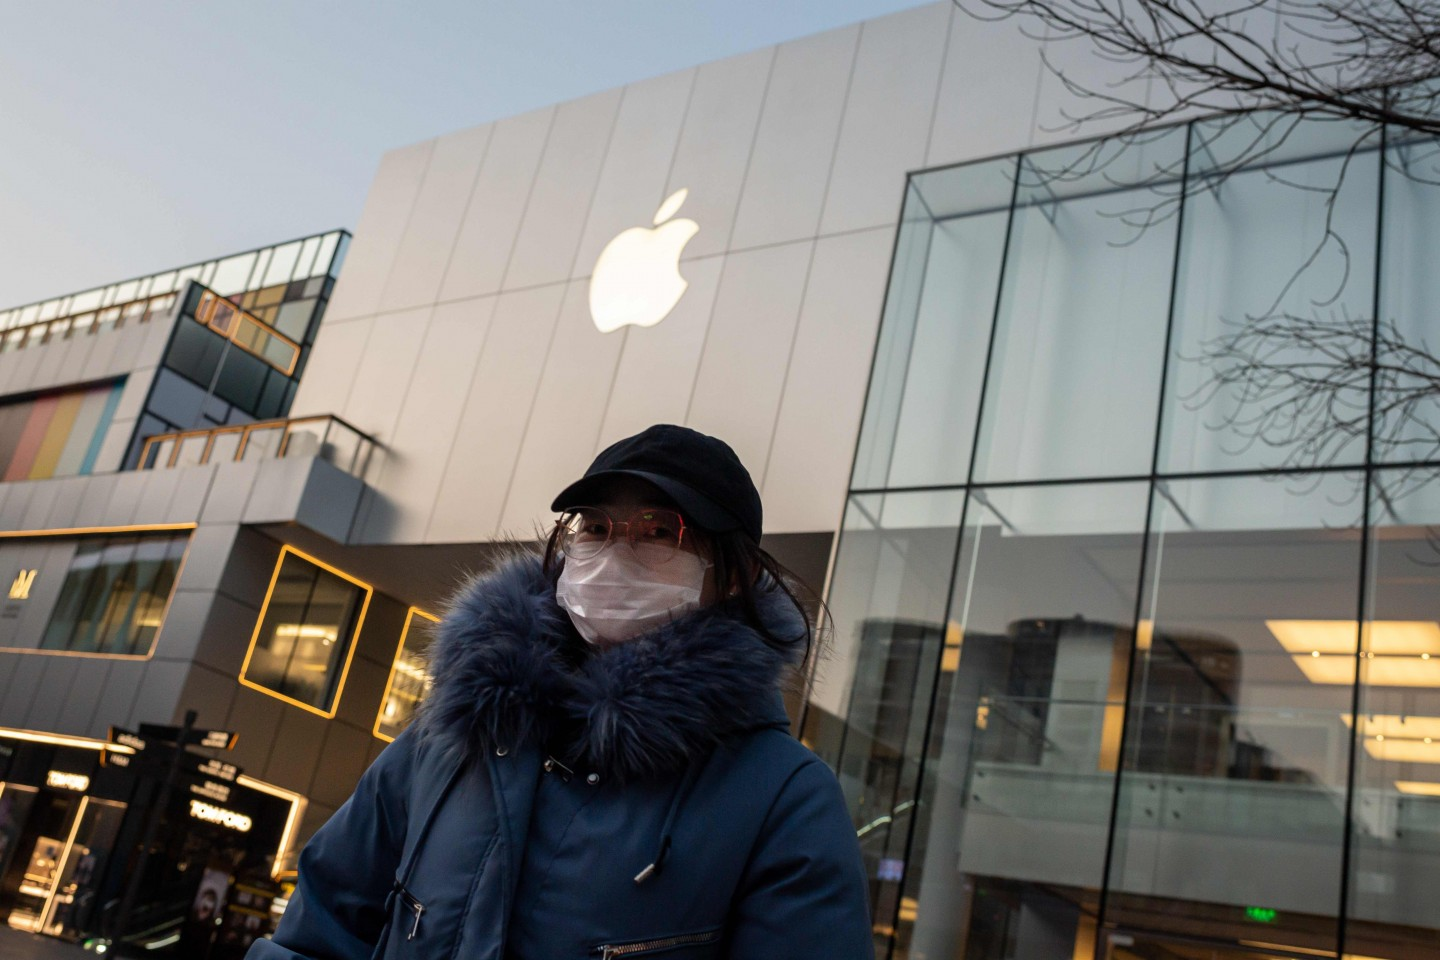 In this file photo taken on 3 February 2020, a woman wearing a protective facemask walks outside of a closed-off Apple Store in Beijing. Apple is expected to to delay the launch of its newest iPhone model originally planned for March this year. (Nicolas Asfouri/AFP)